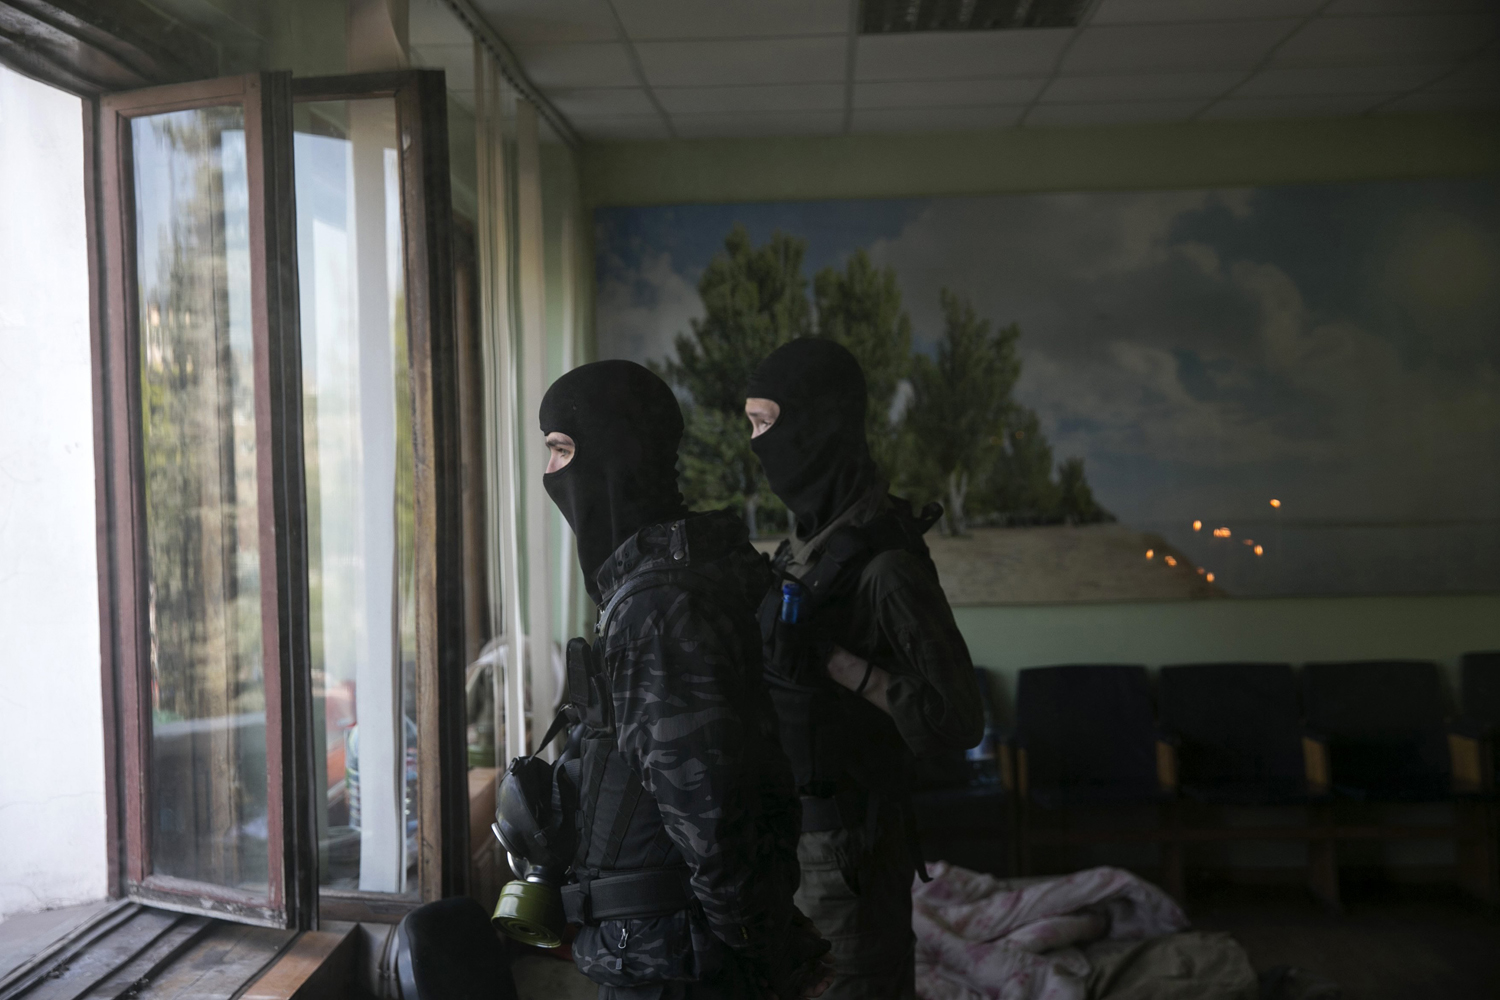 April 26, 2014. Pro-Russian masked men stand watch inside the Mariupol town hall in east Ukraine.